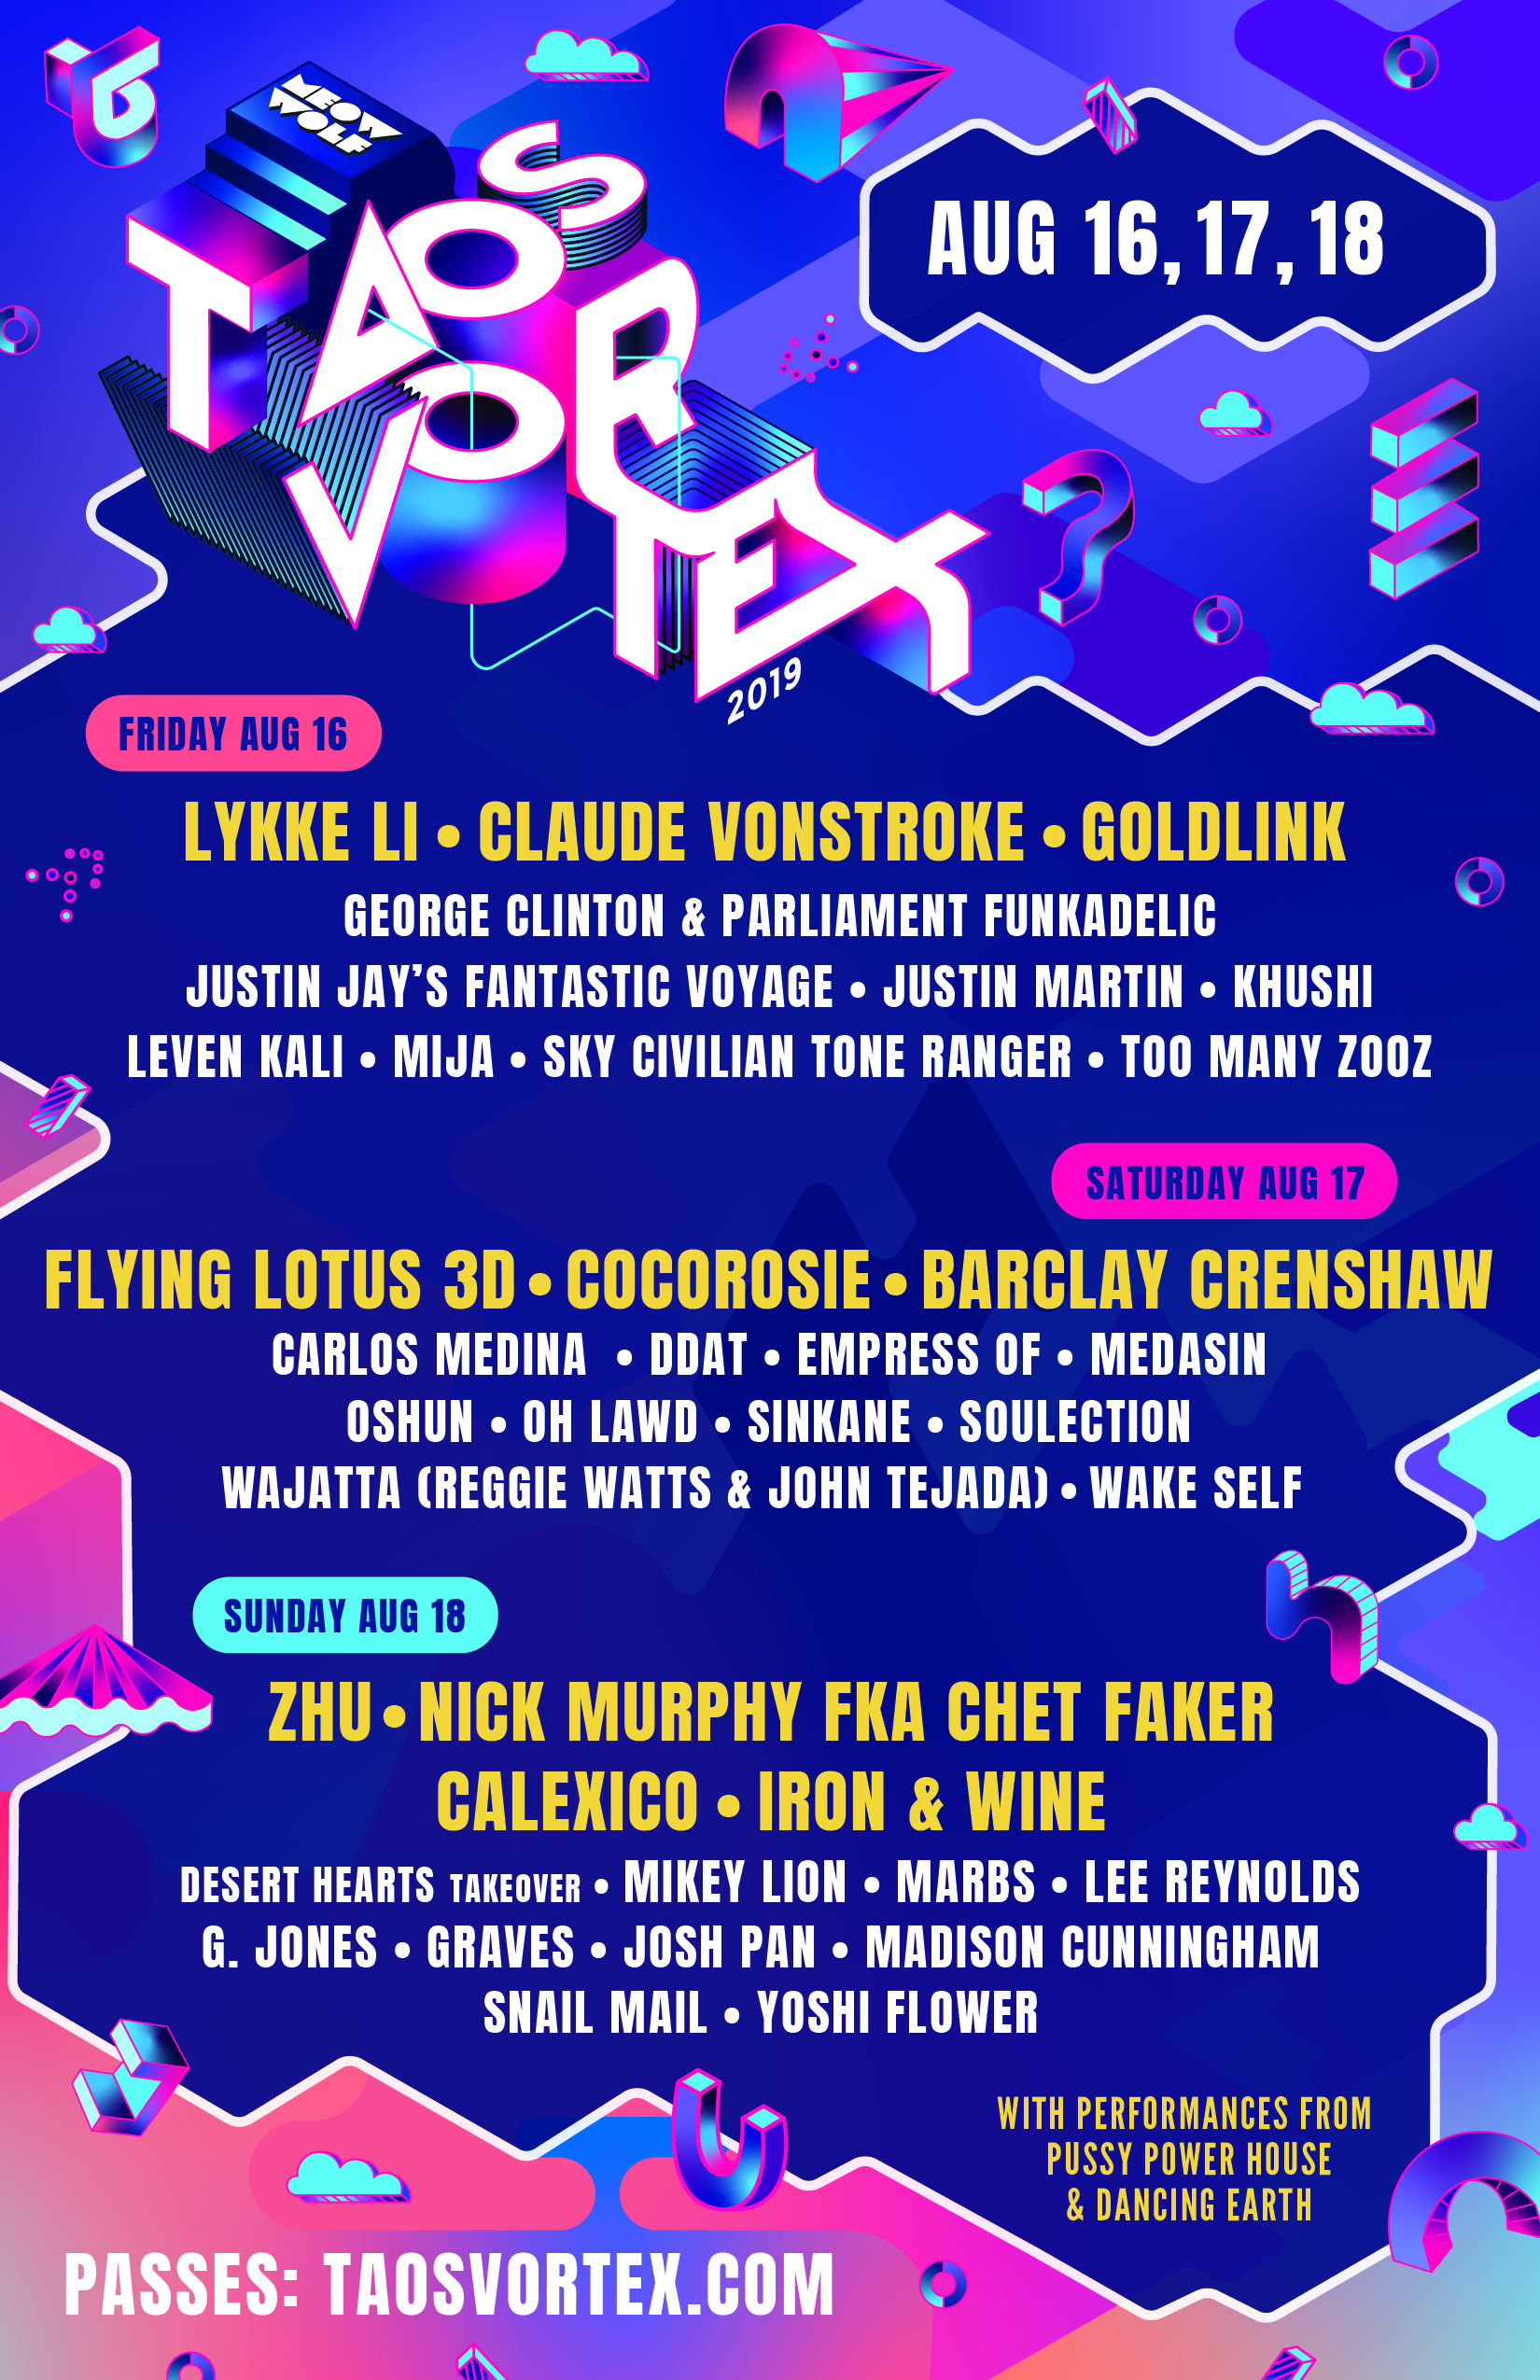 Vortex 2019 11x17 All Weekend Line Up-Final-01 REVISED.jpg